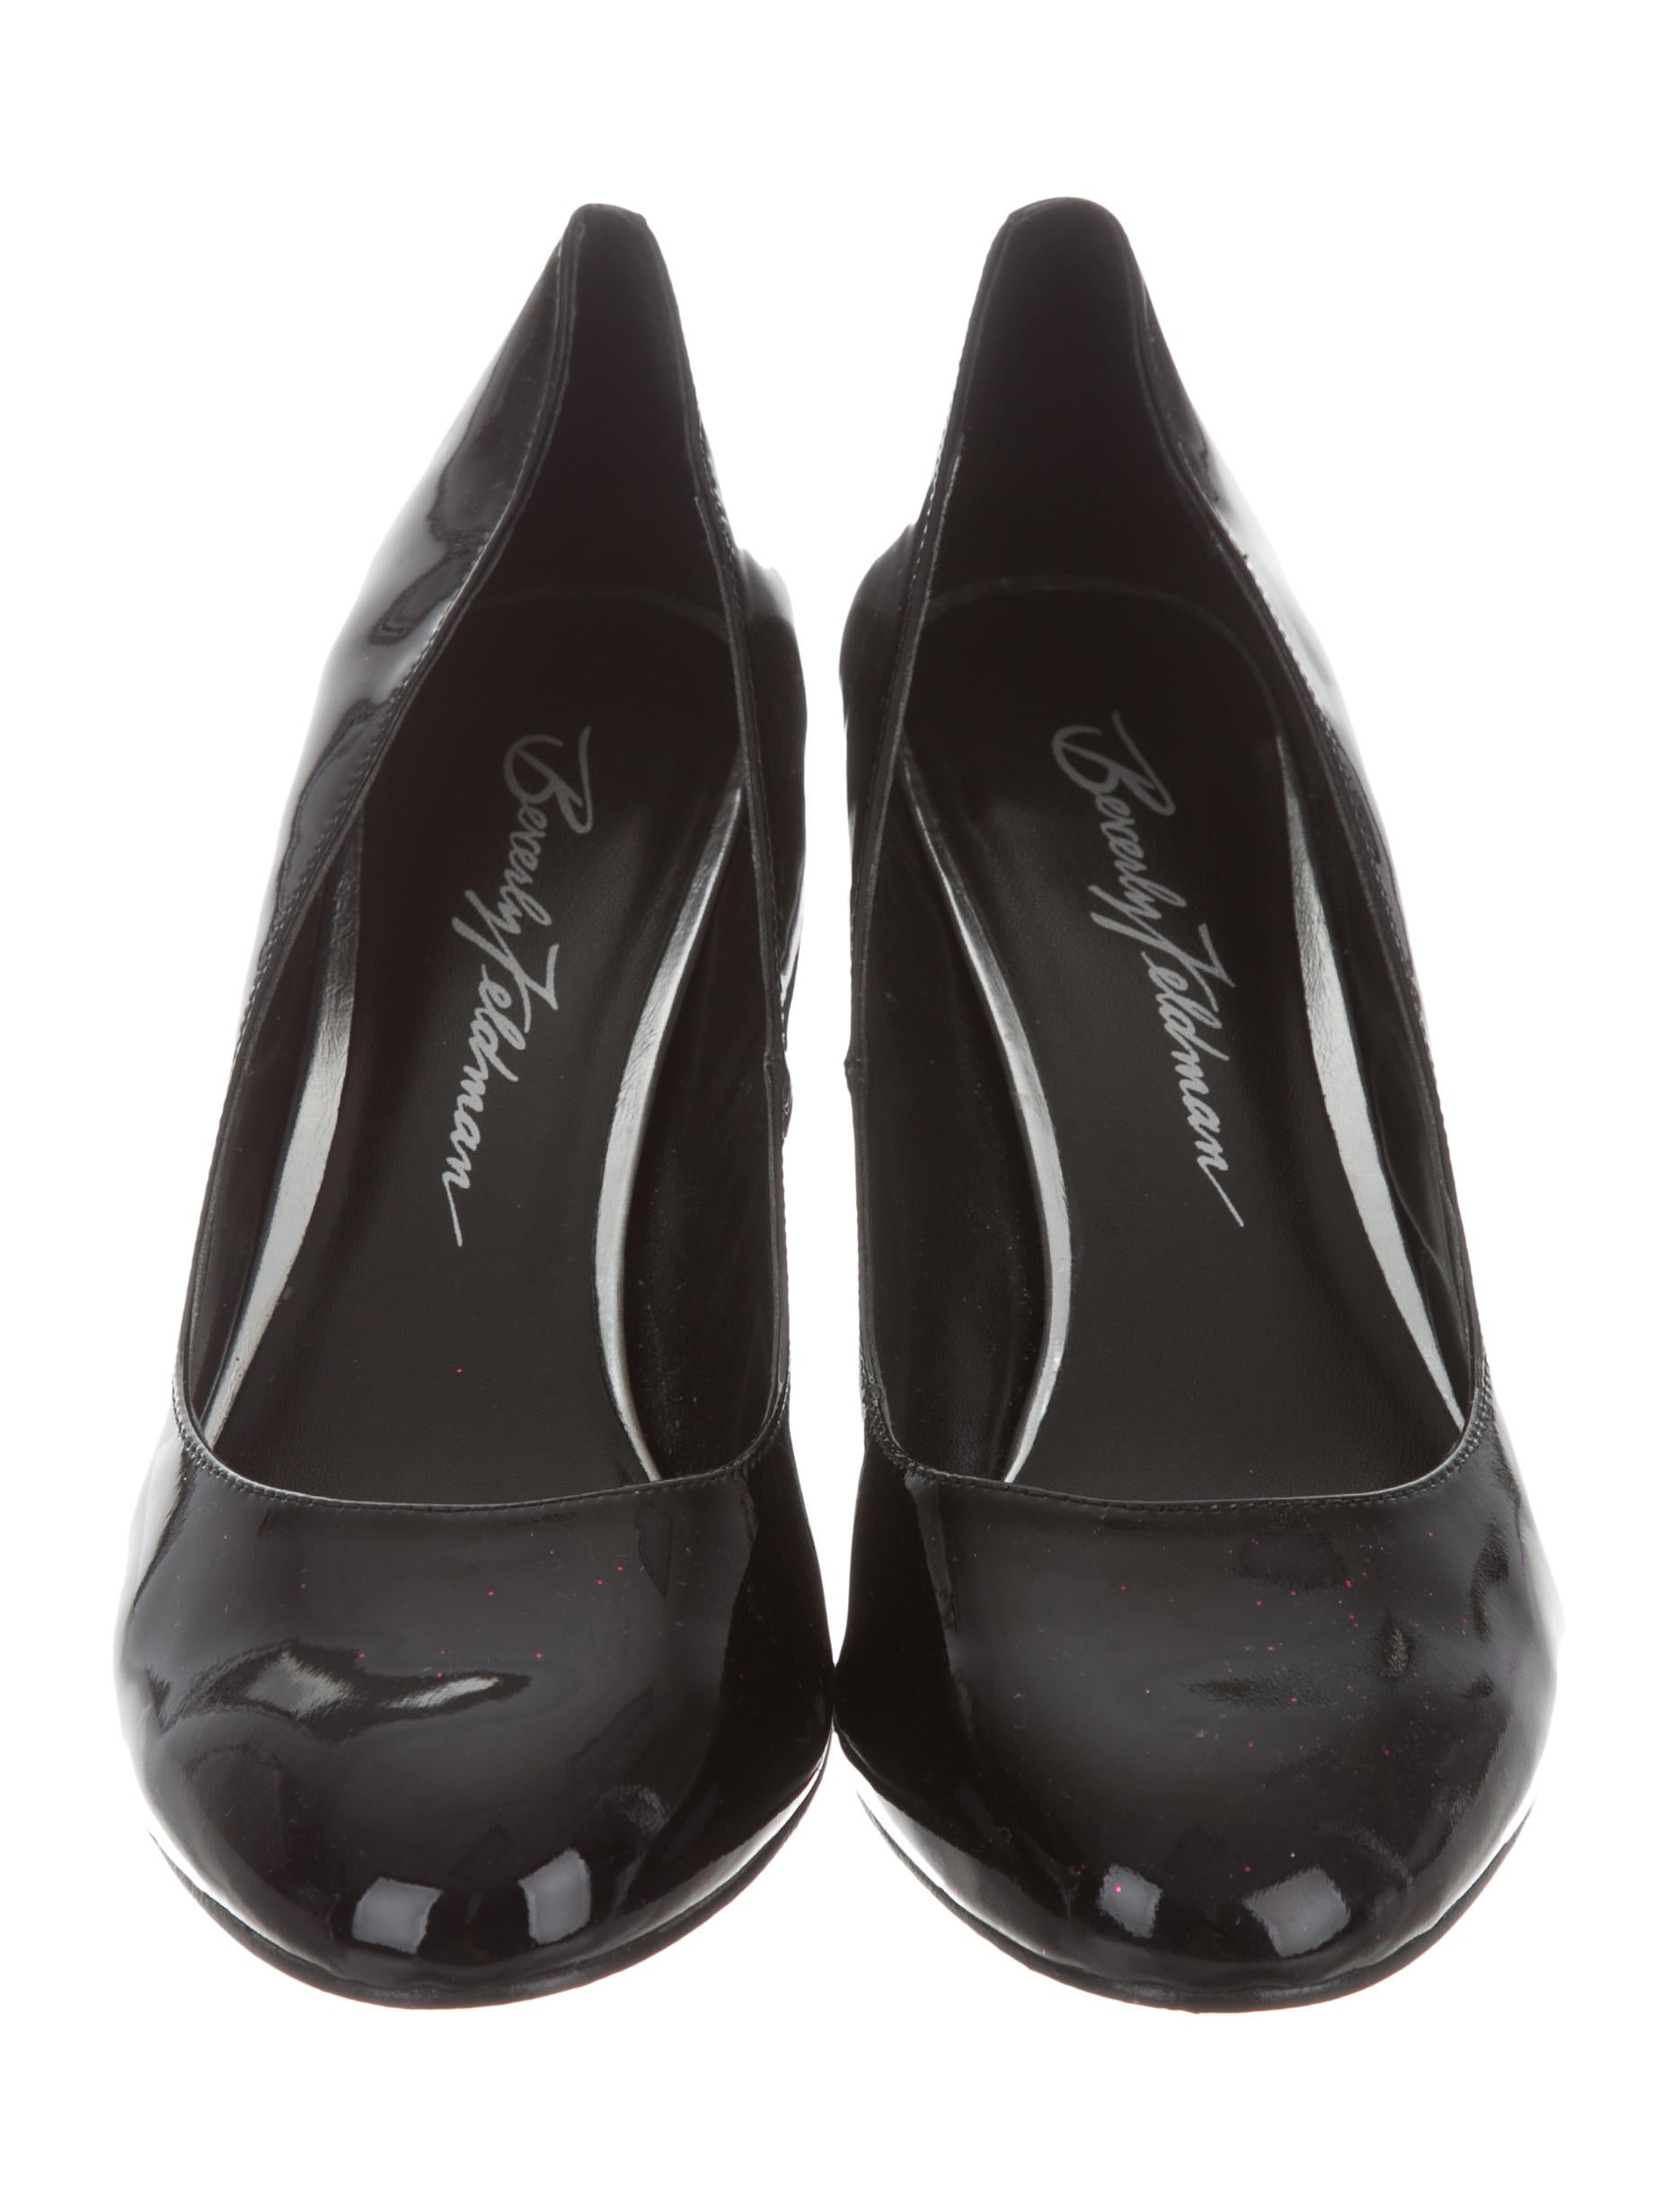 sale lowest price for sale discount sale Beverly Feldman Madalyn Patent Leather Pumps best seller for sale real sale online oouVT